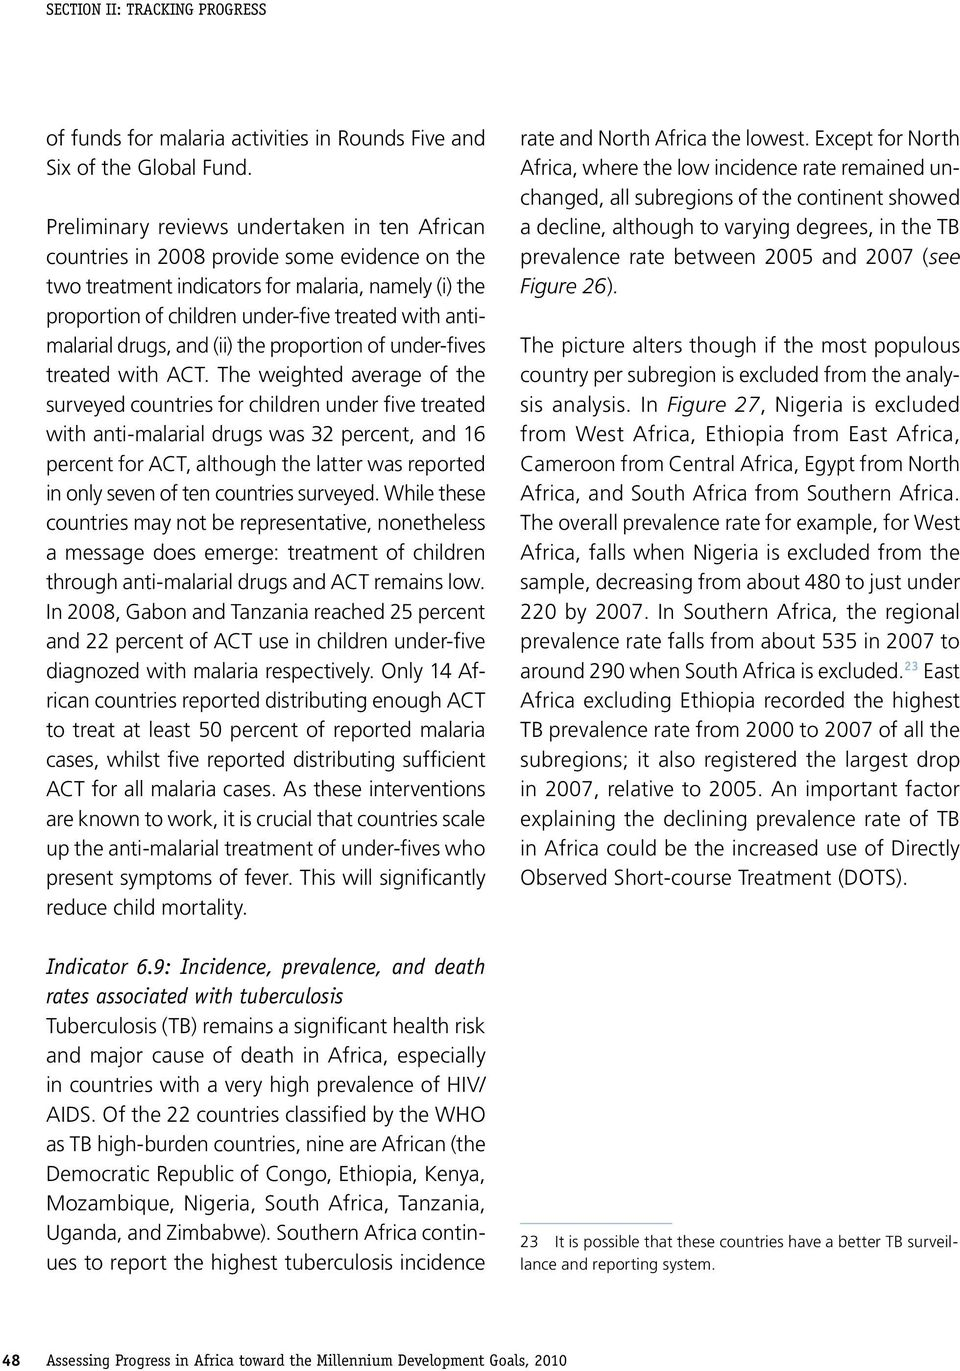 antimalarial drugs, and (ii) the proportion of under-fives treated with ACT.